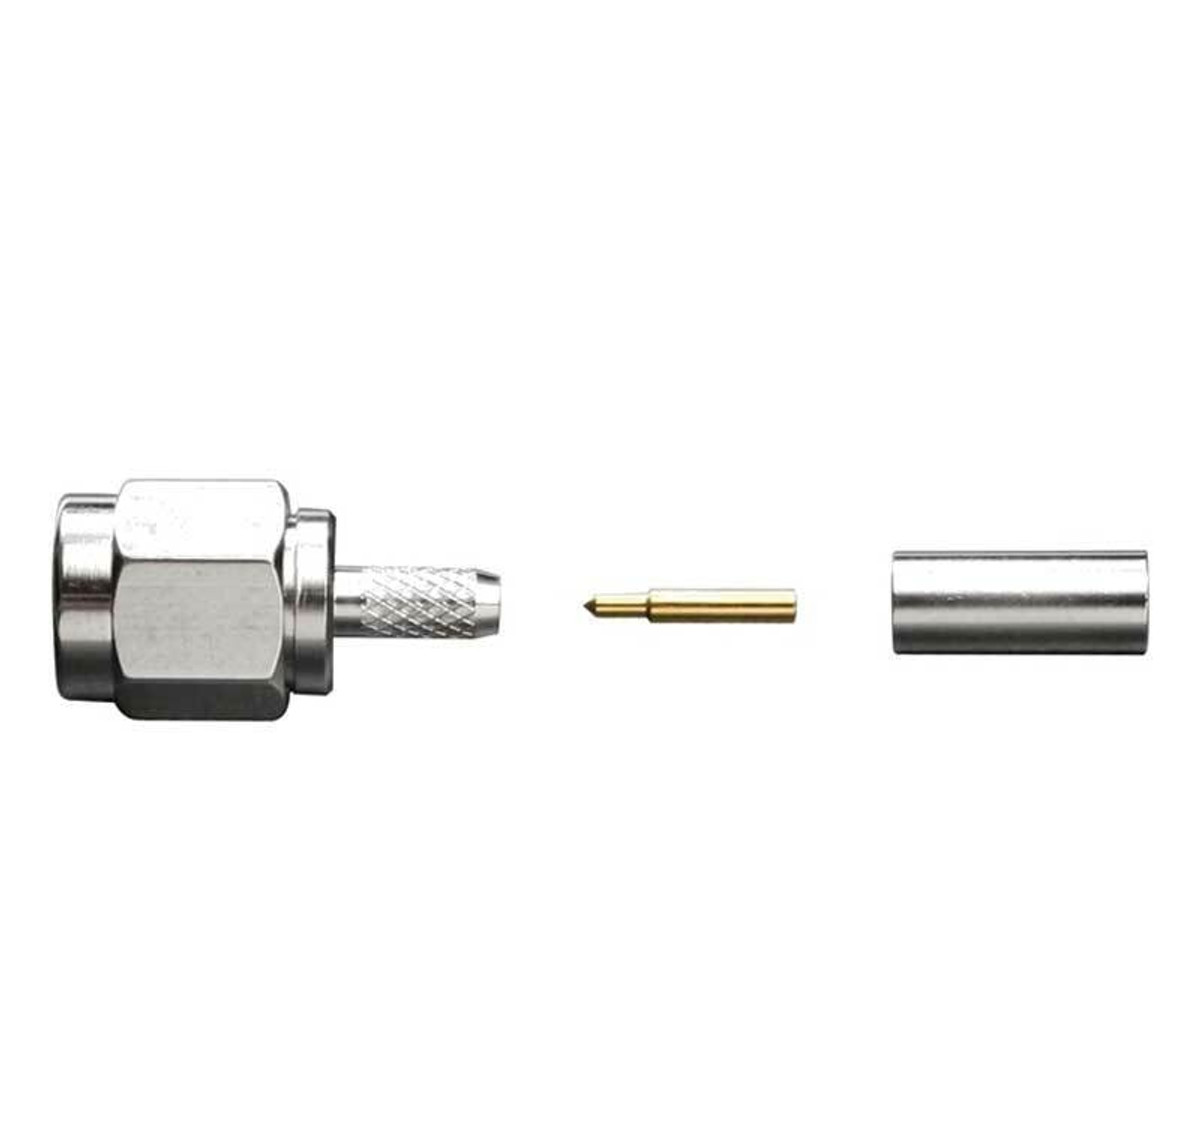 weBoost (Wilson) 971139 SMA-Male Crimp for RG-174 Cable